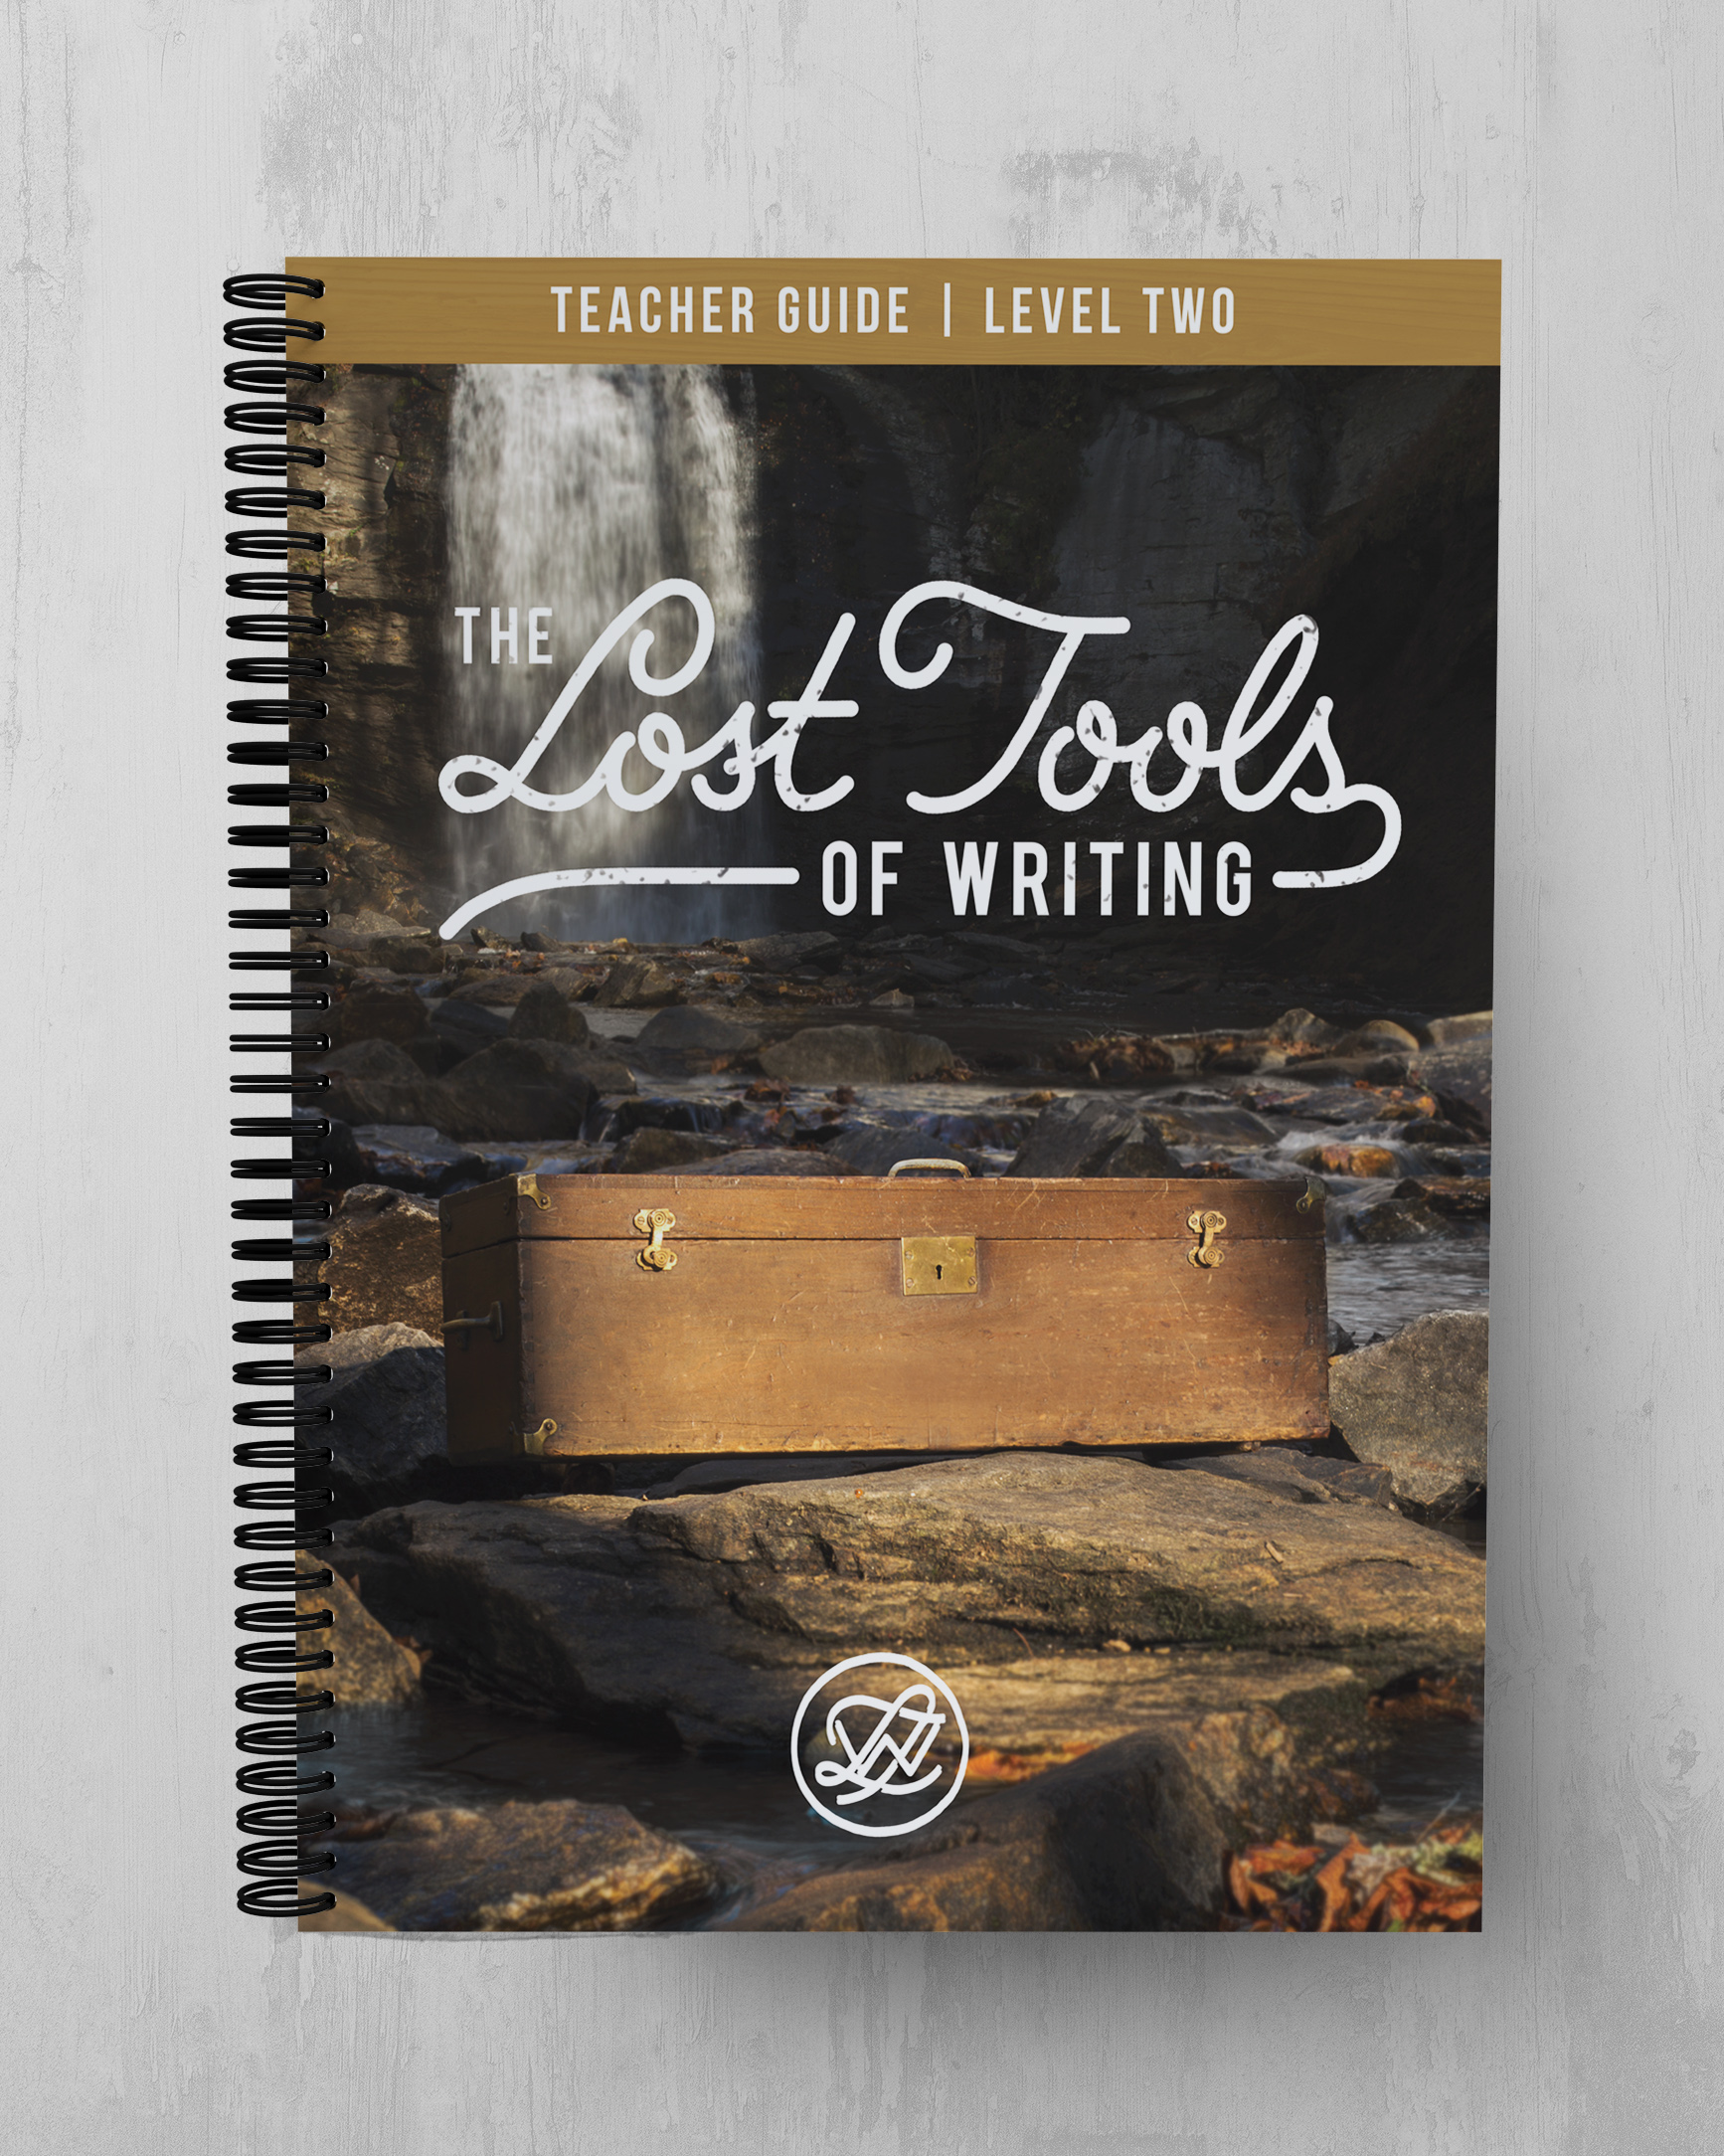 Lost Tools of Writing Level Two - Teacher Guide